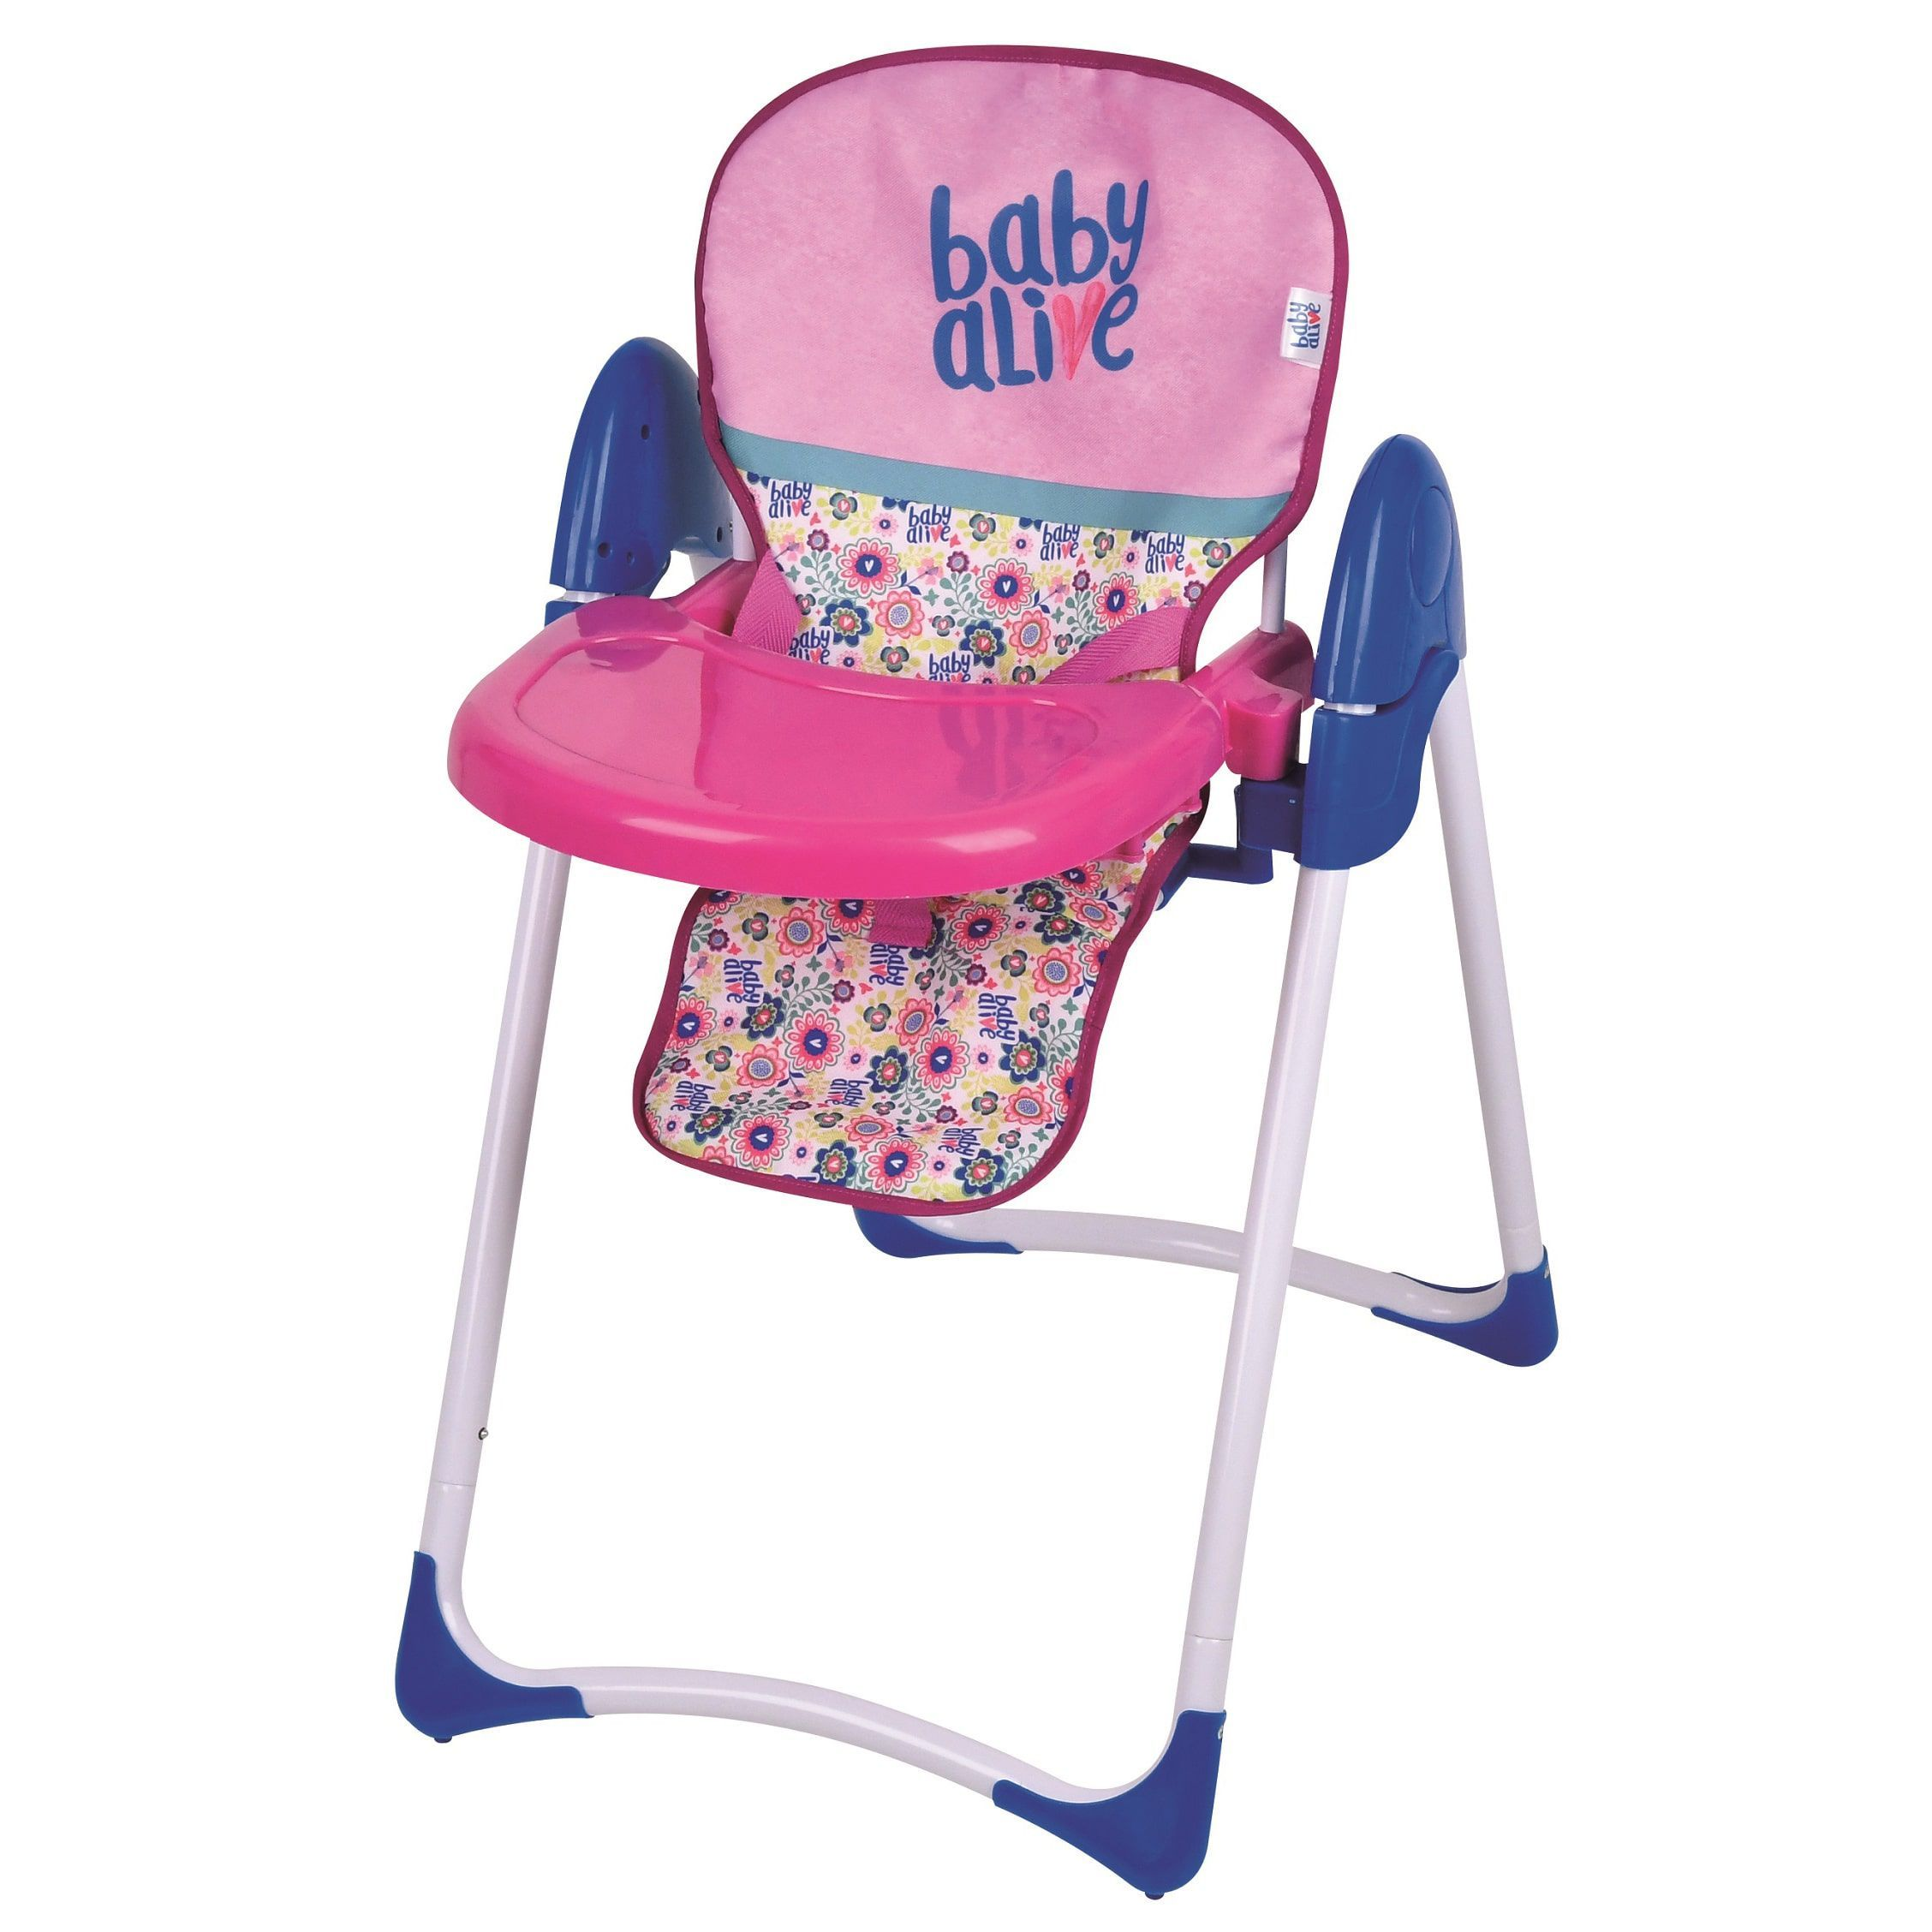 Hauck High Chair Cover And Sash Hire Newcastle Hasbro Baby Alive Doll Deluxe